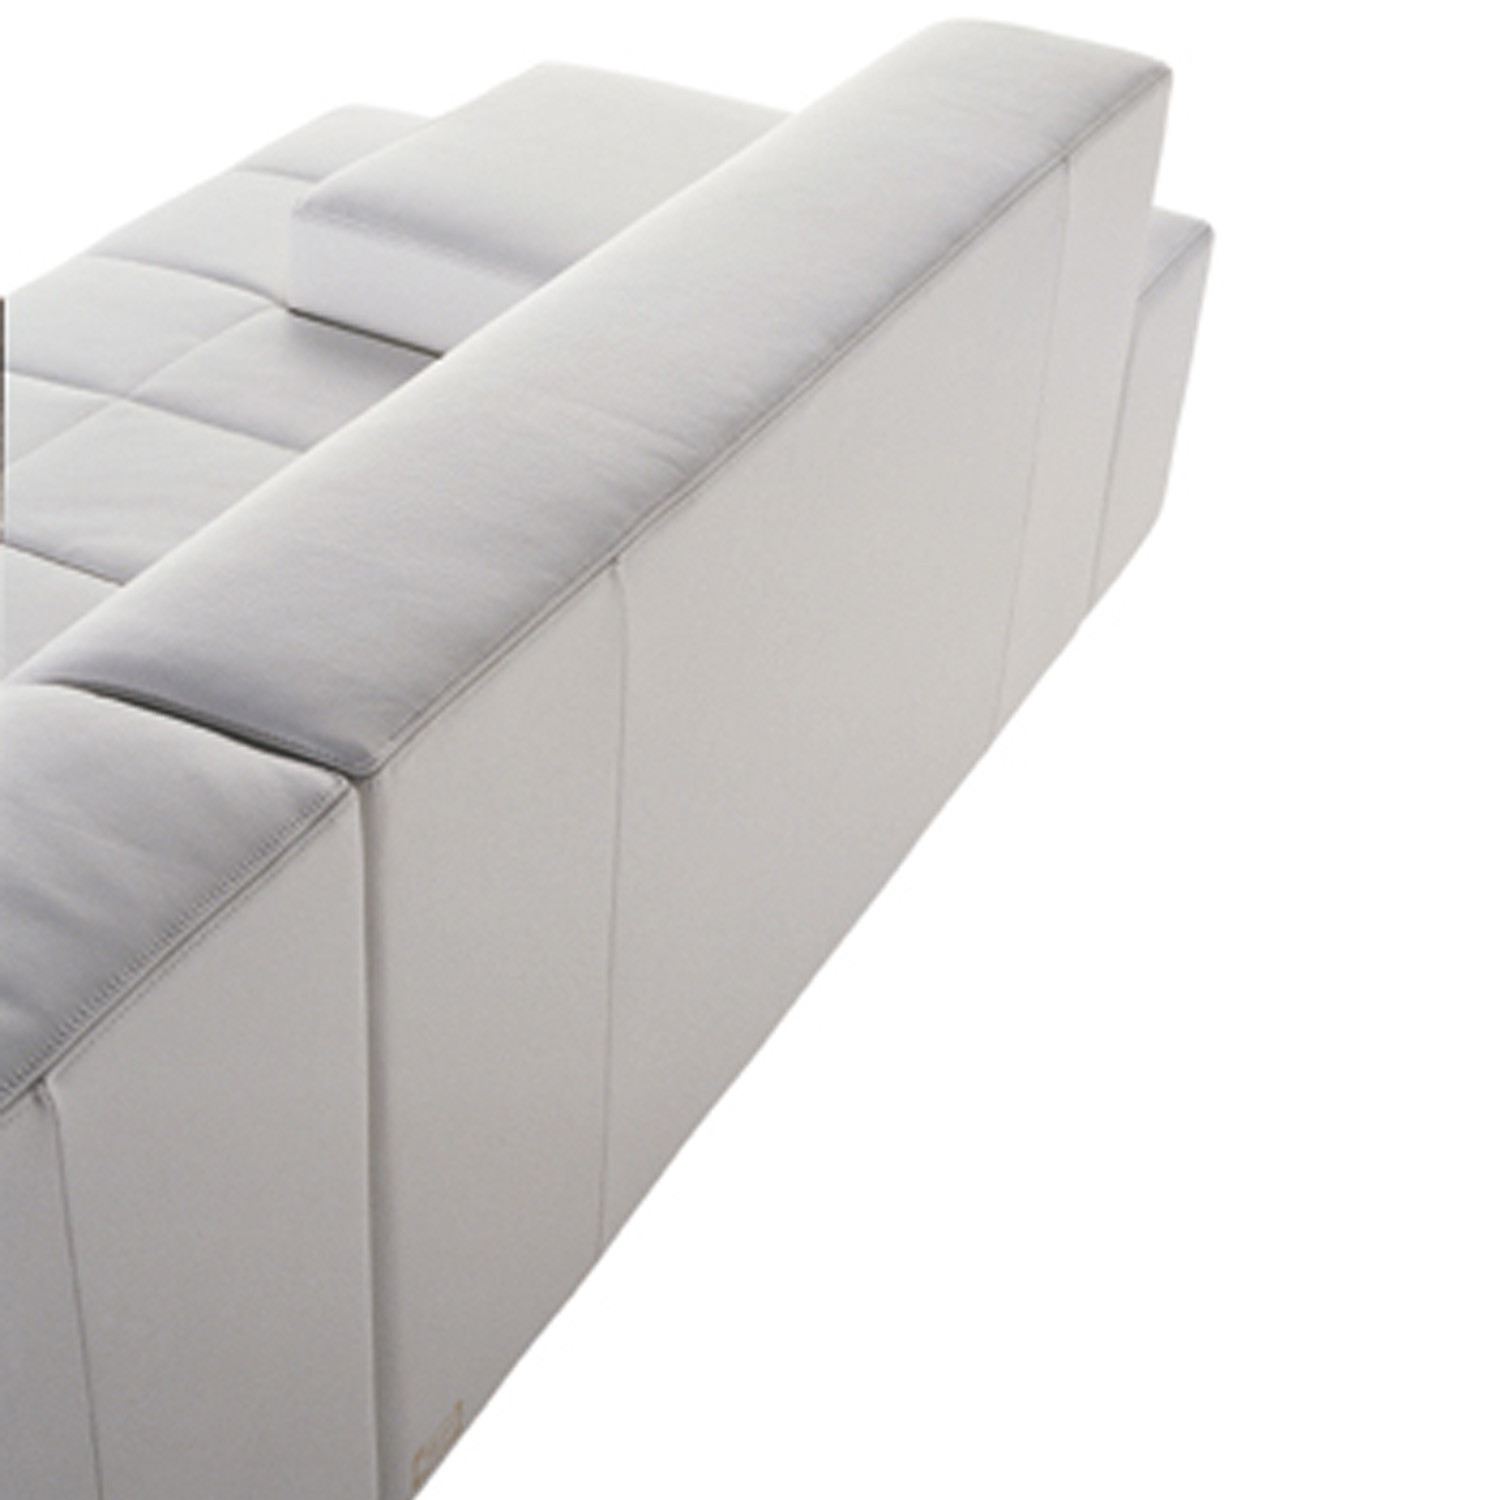 Quadra Sofa Back Angle